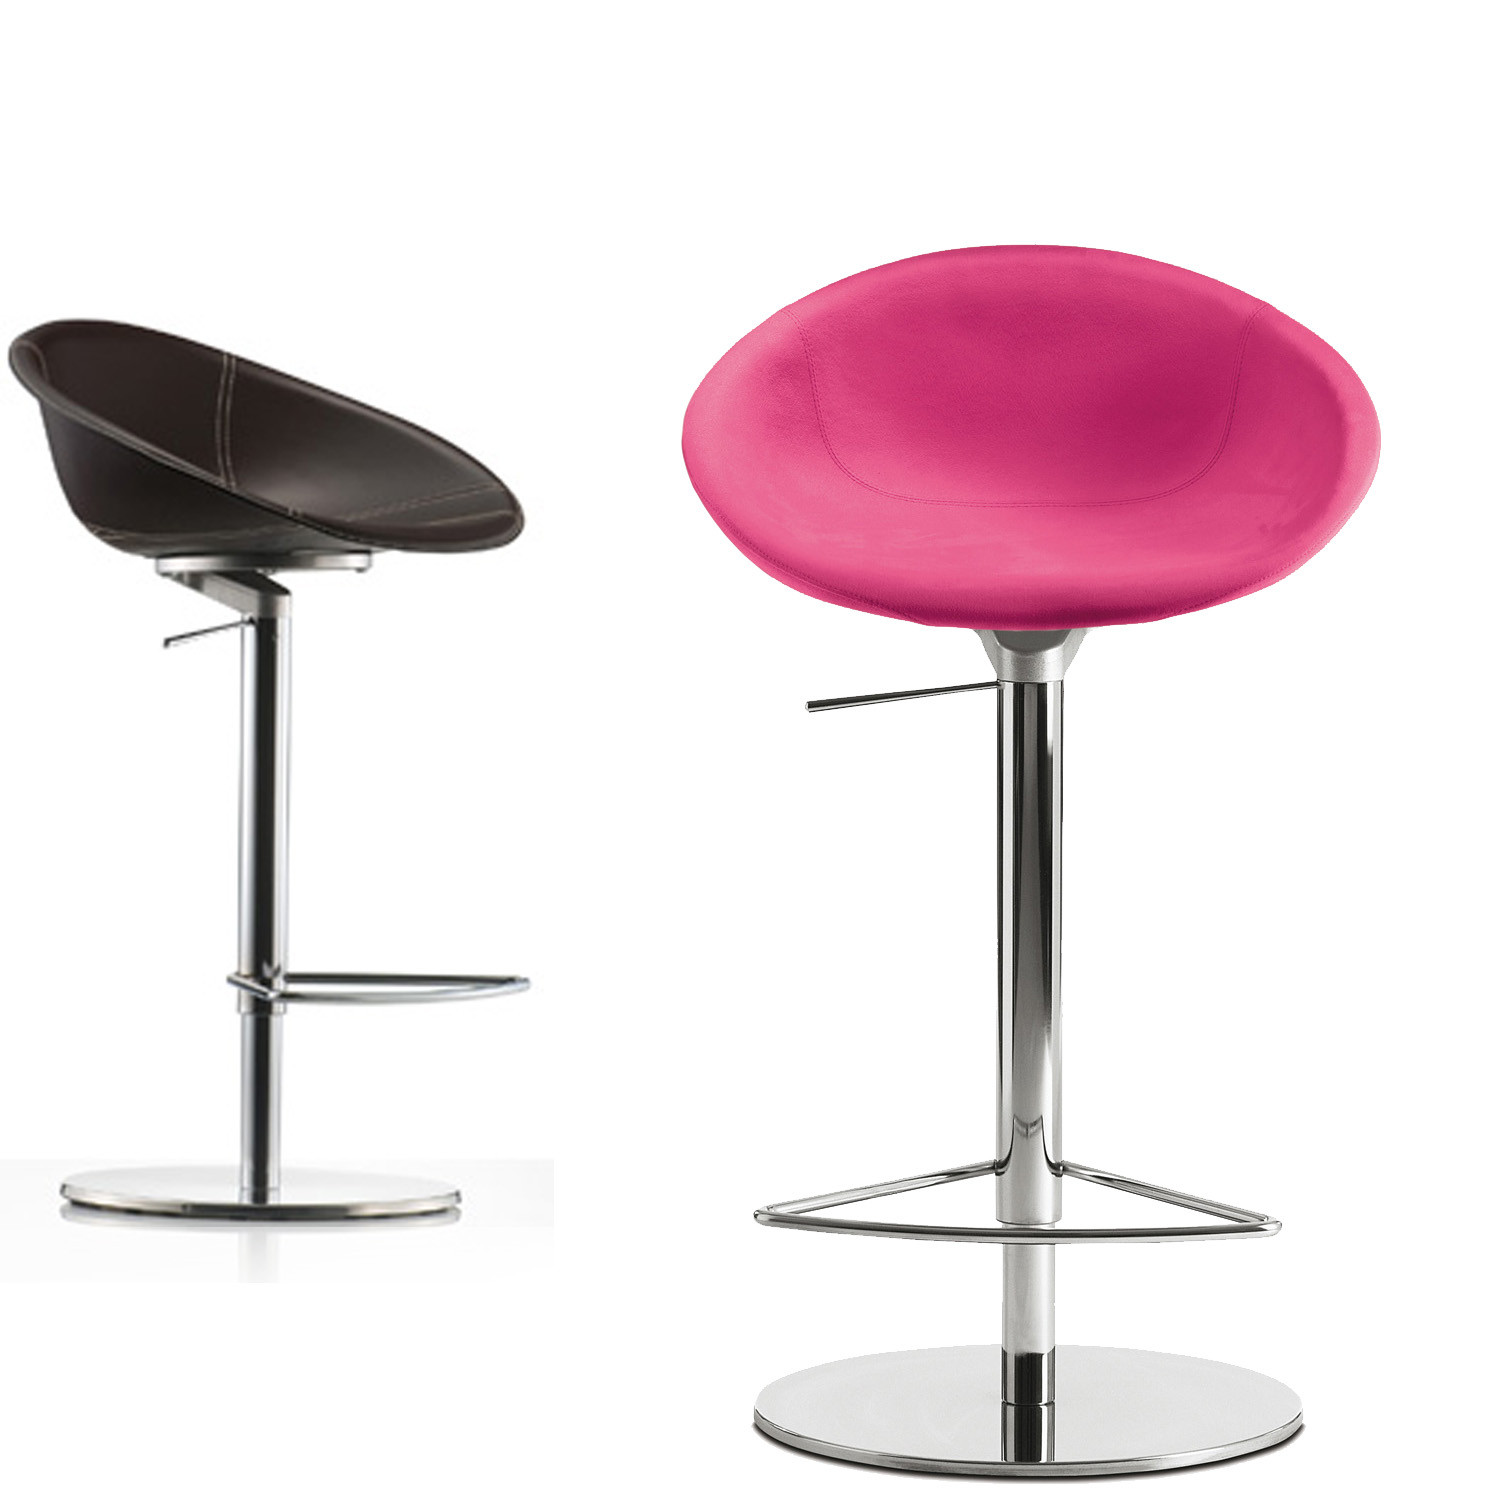 Gliss Bar Stools Modern Bar Stools Apr 232 S Furniture